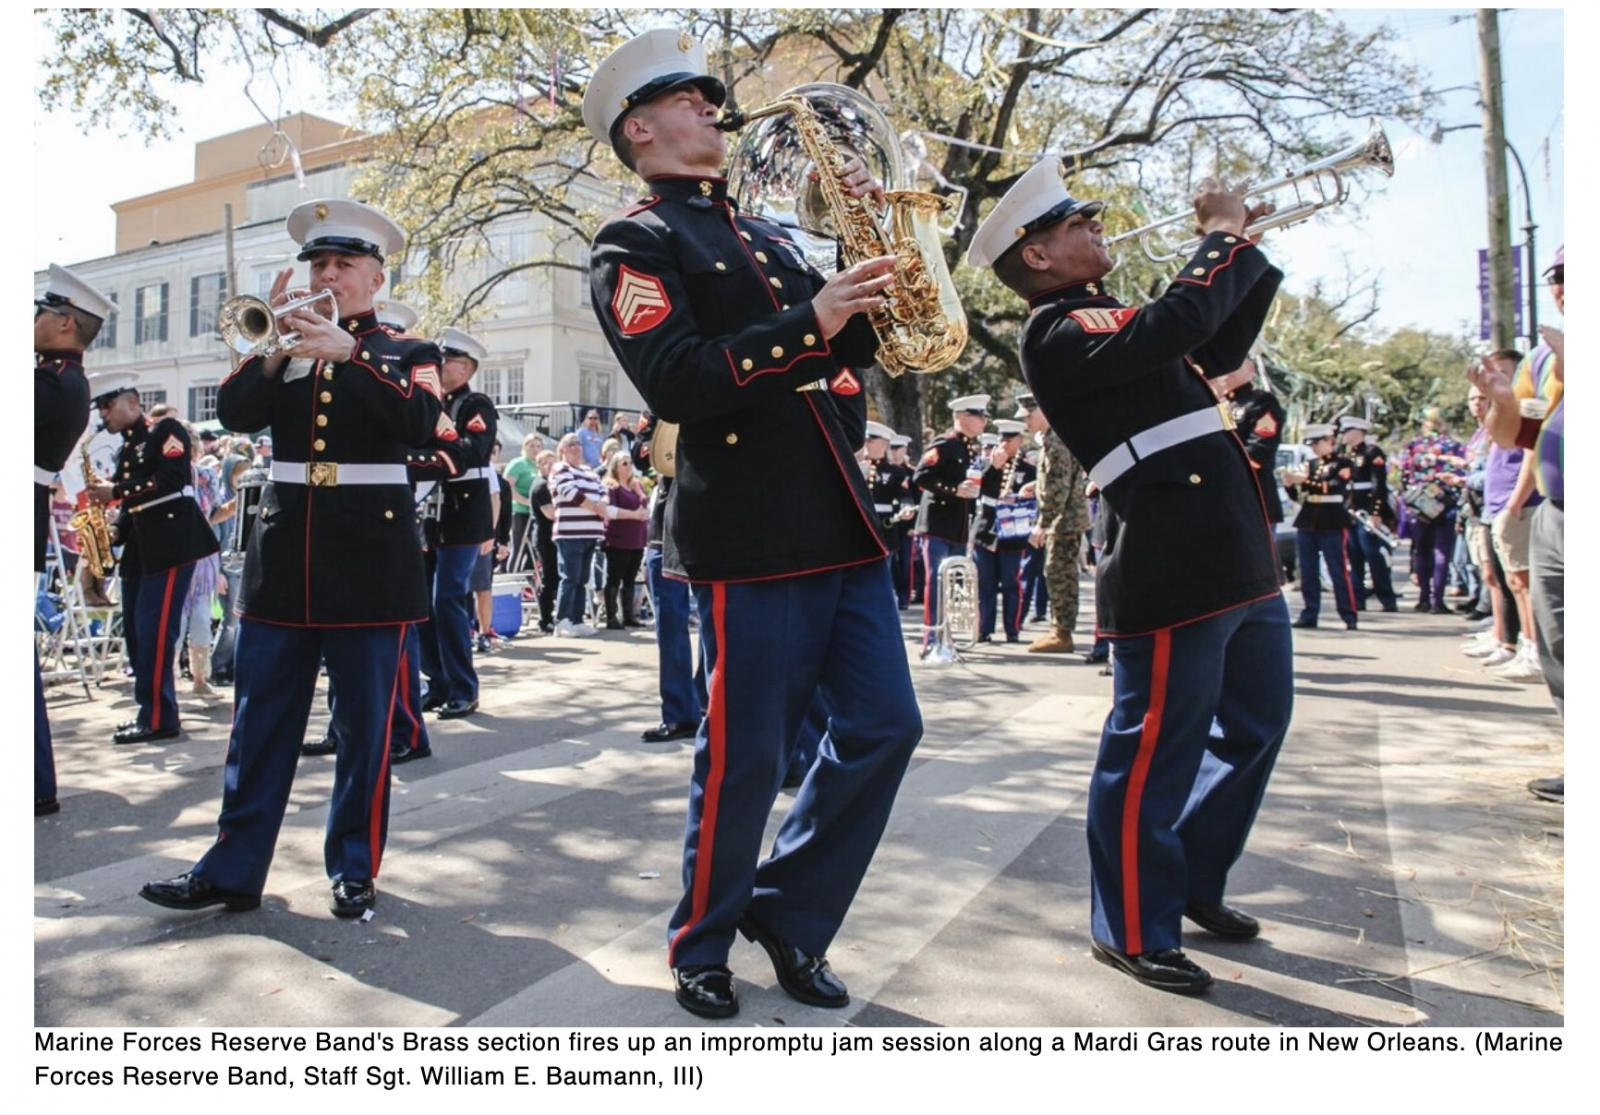 Marine Corps Forces Reserve Band once again takes the streets at New Orleans Mardi Gras